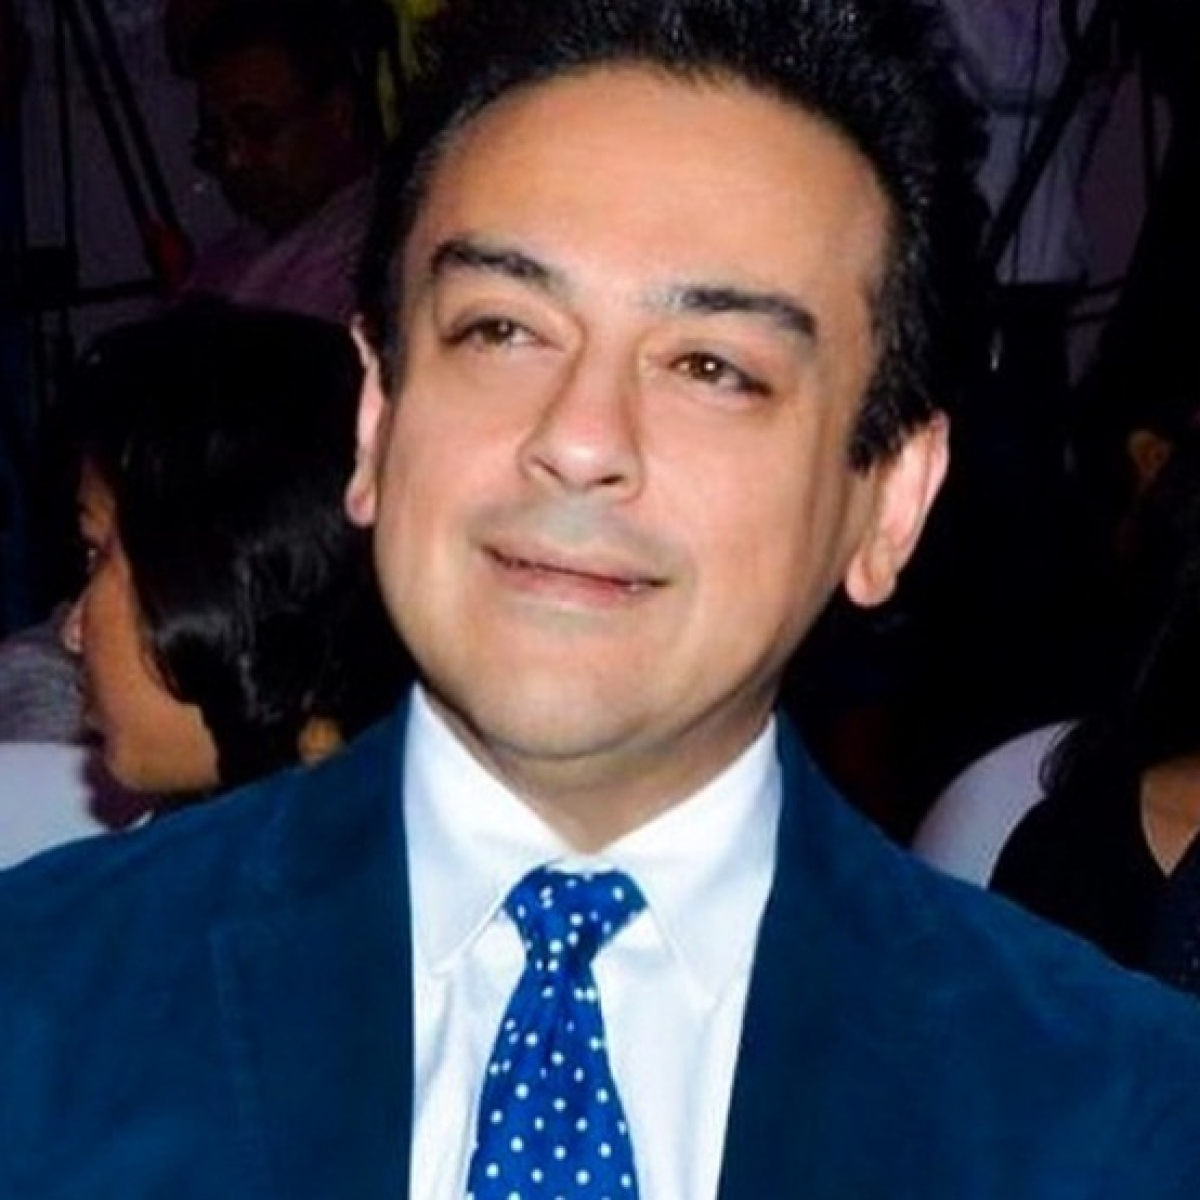 Pakistanis frustrated with their own lives: Adnan Sami on flak from Pakistanis